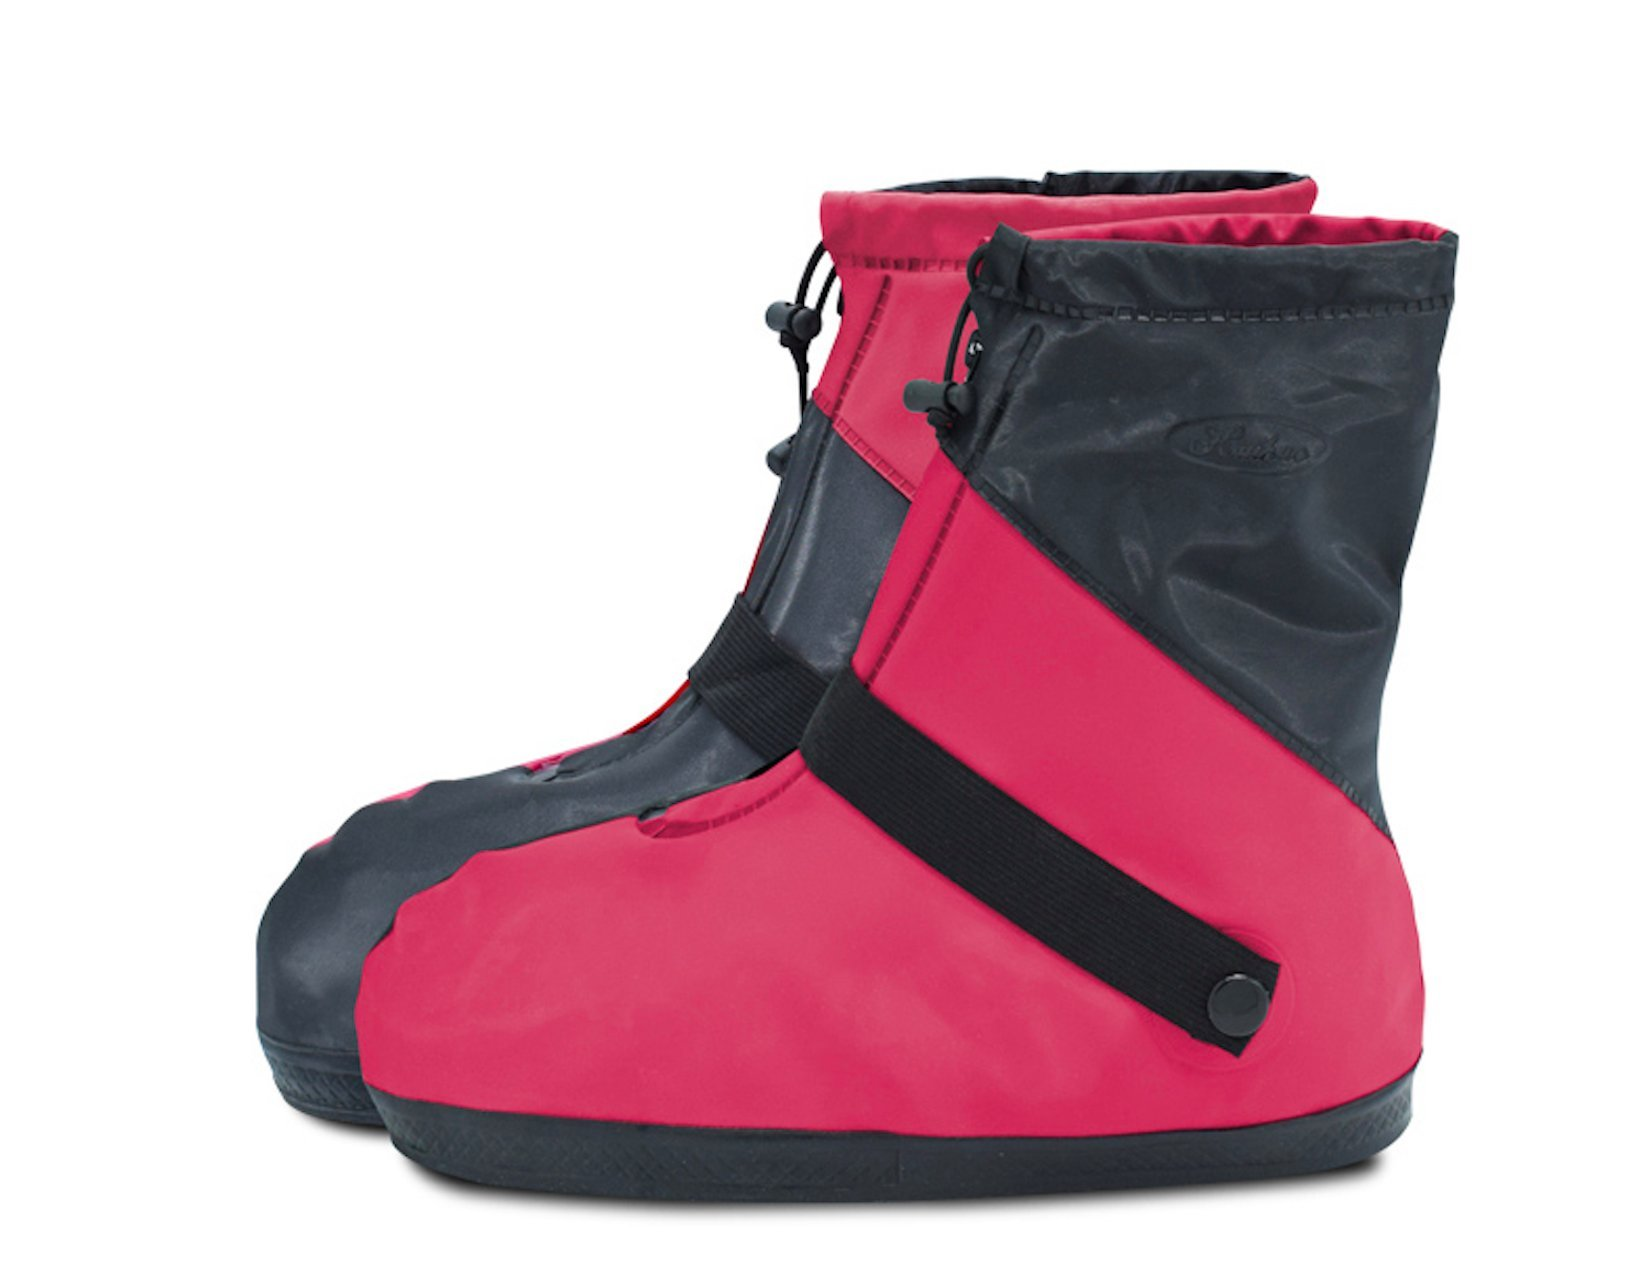 ARUNNERS Rain Boots Shoes Covers Overshoes Galoshes Wellies Gumboots Travel for Women Men (M, Black & Red)